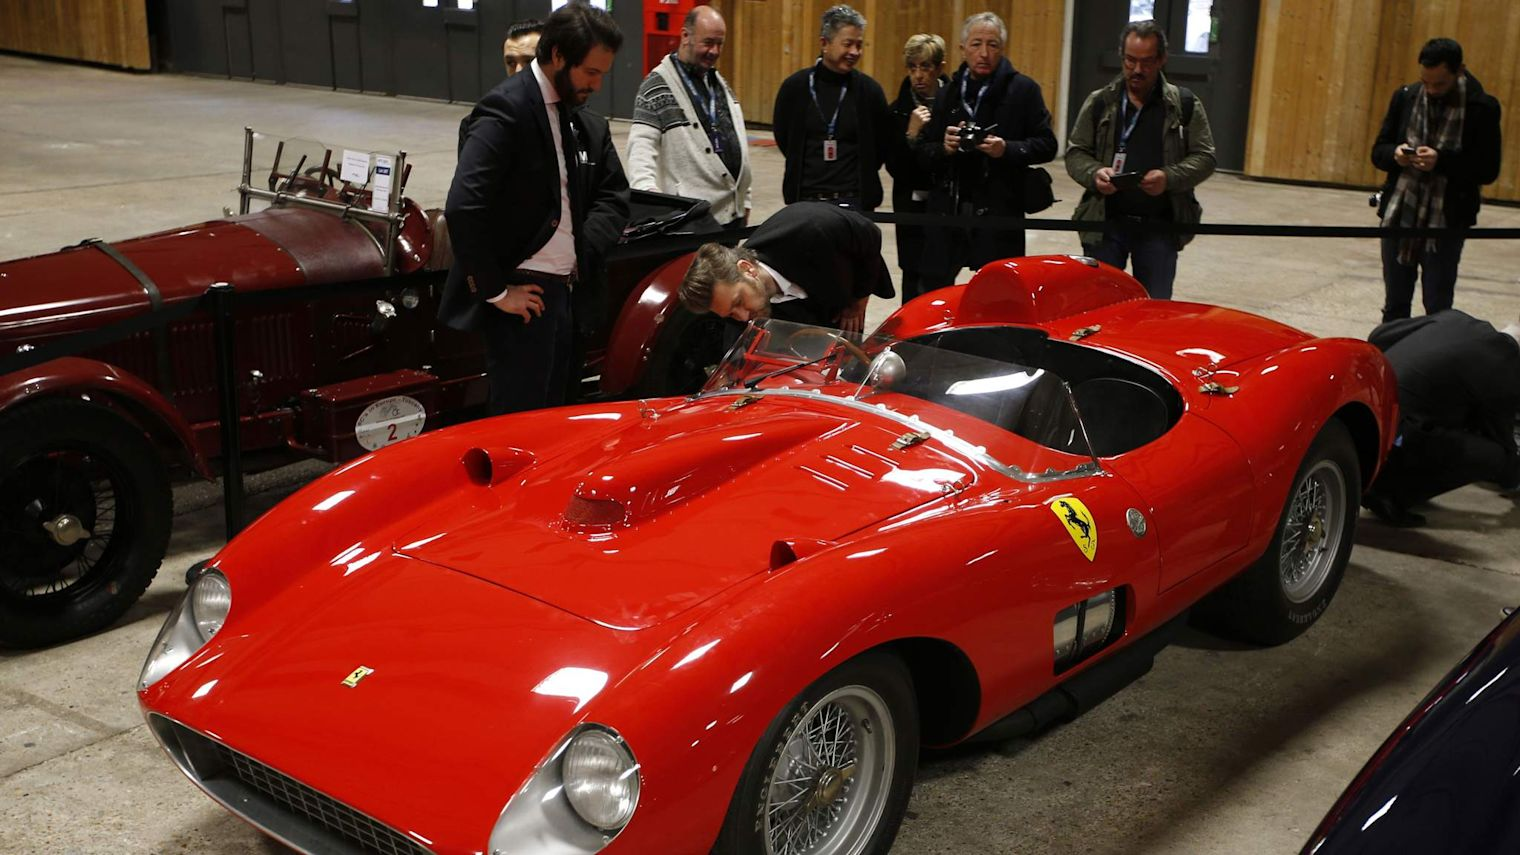 'Iconic' Red Ferrari Sells For Over £24m